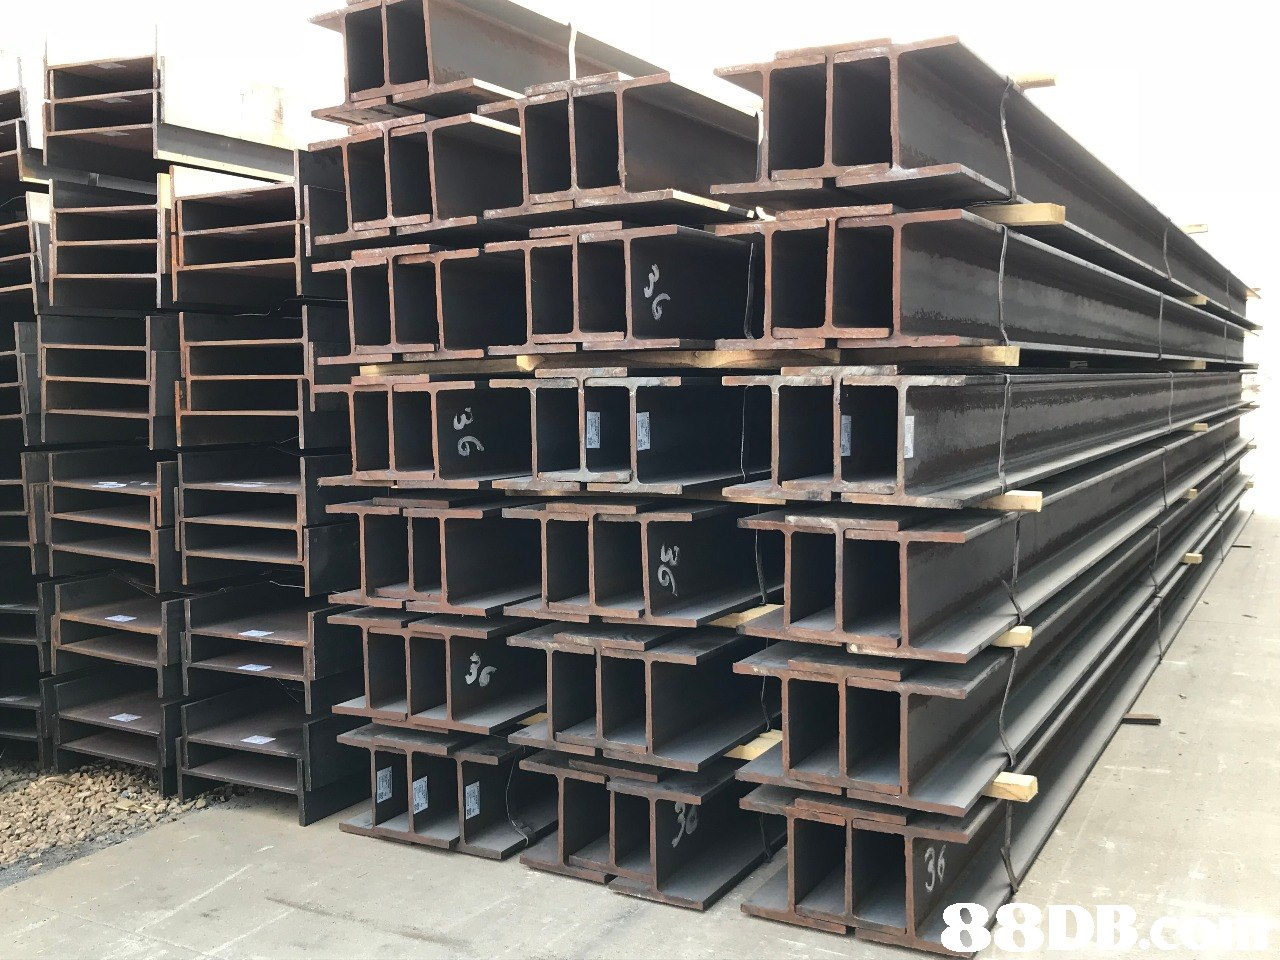 W 36 88DB.a 36 3 6  Beam,Iron,Metal,Steel,Pipe